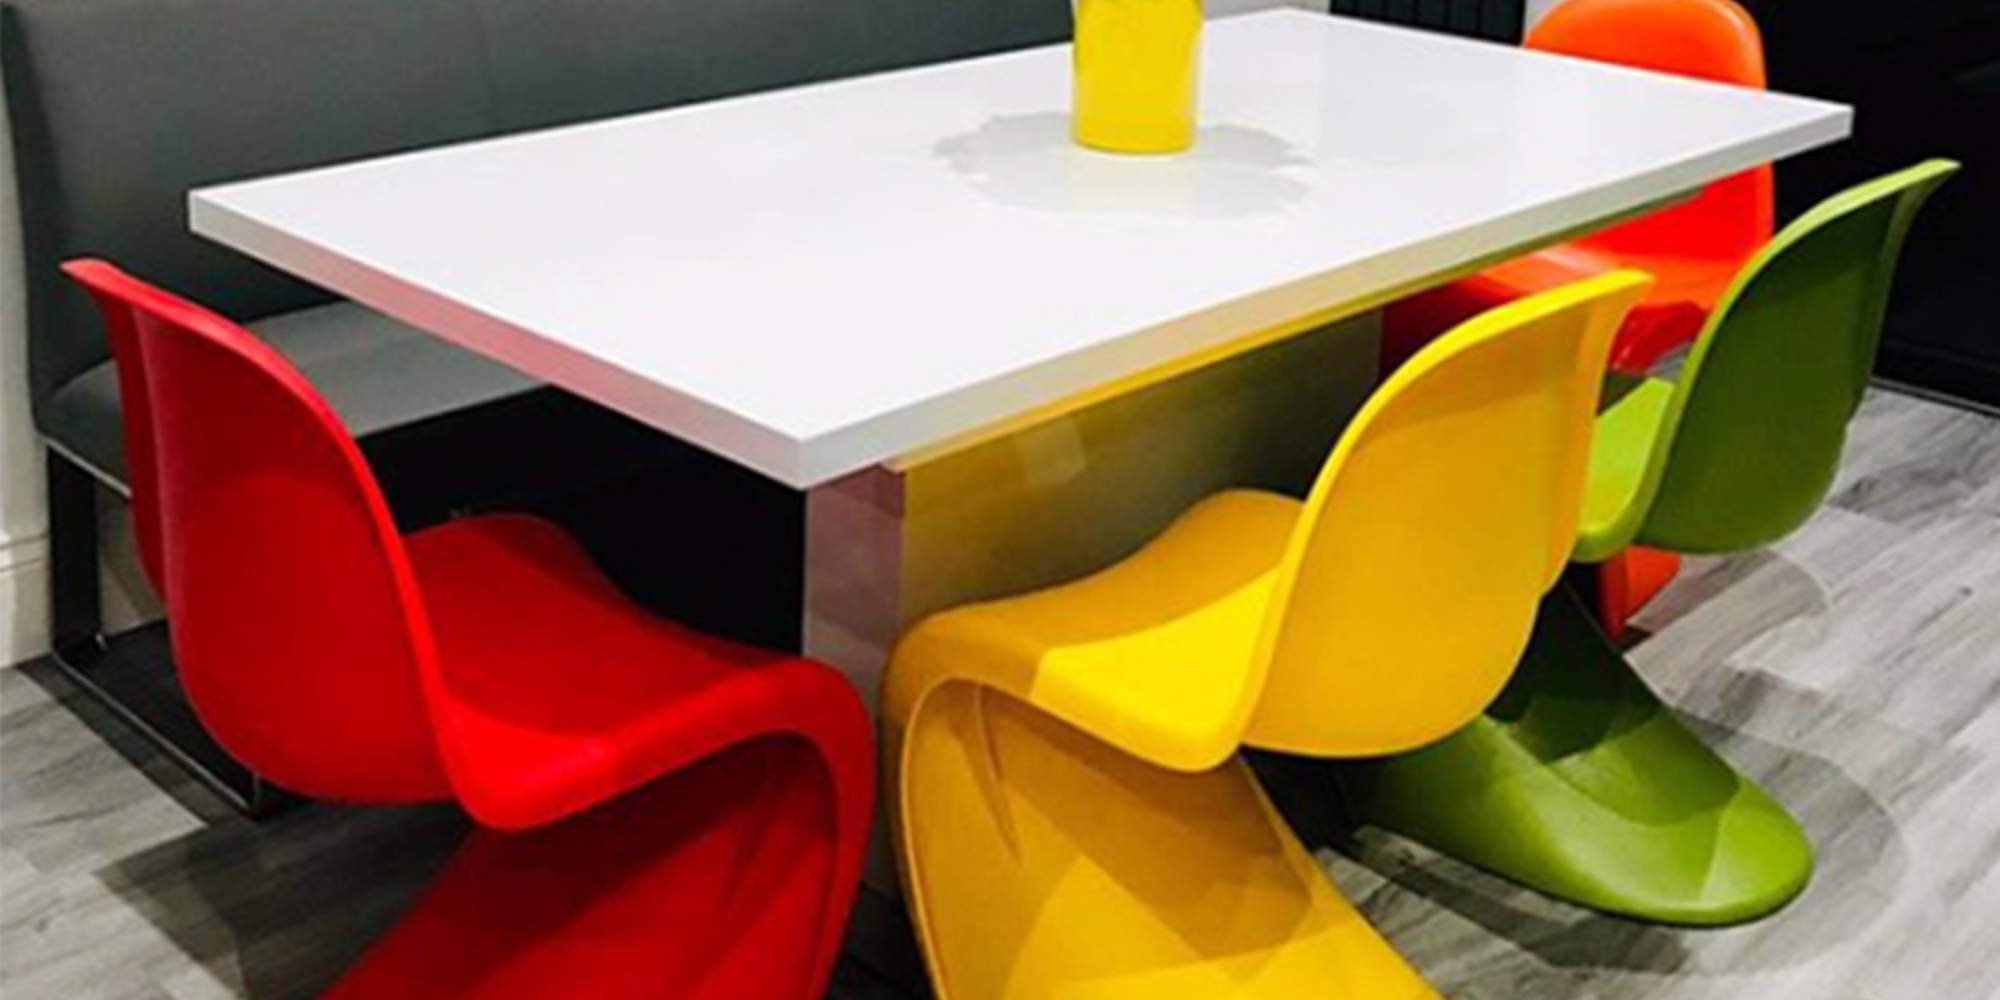 Panton S Chairs Multi Coloured